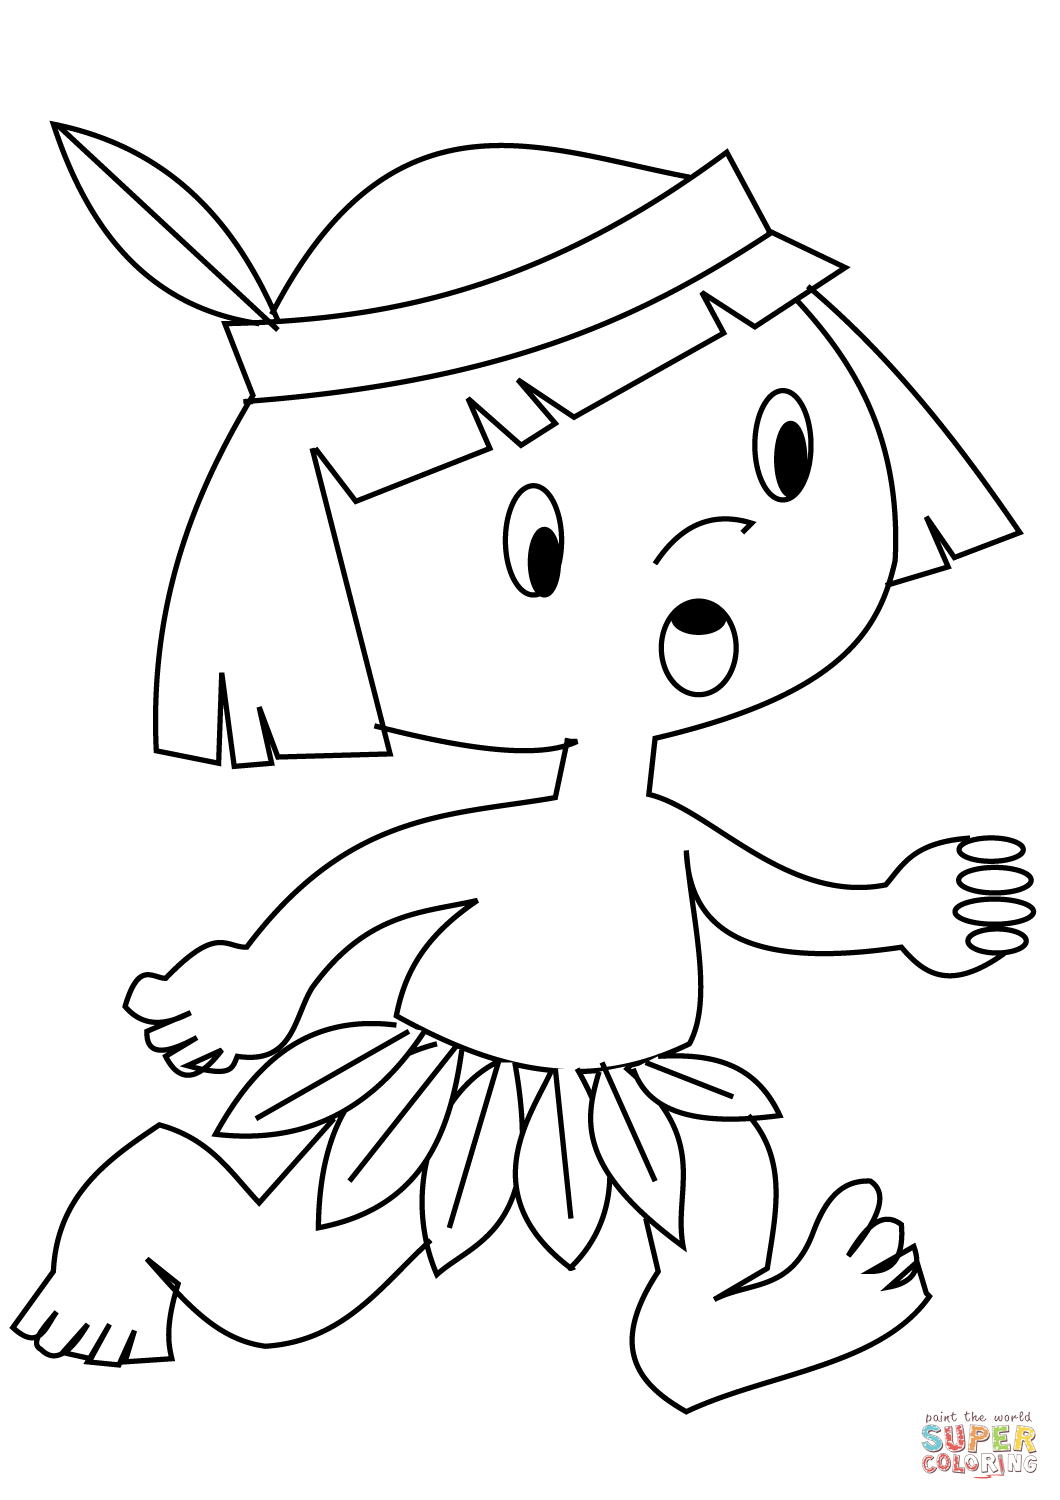 1060x1500 Indian Boy Coloring Page Free Printable Coloring Pages